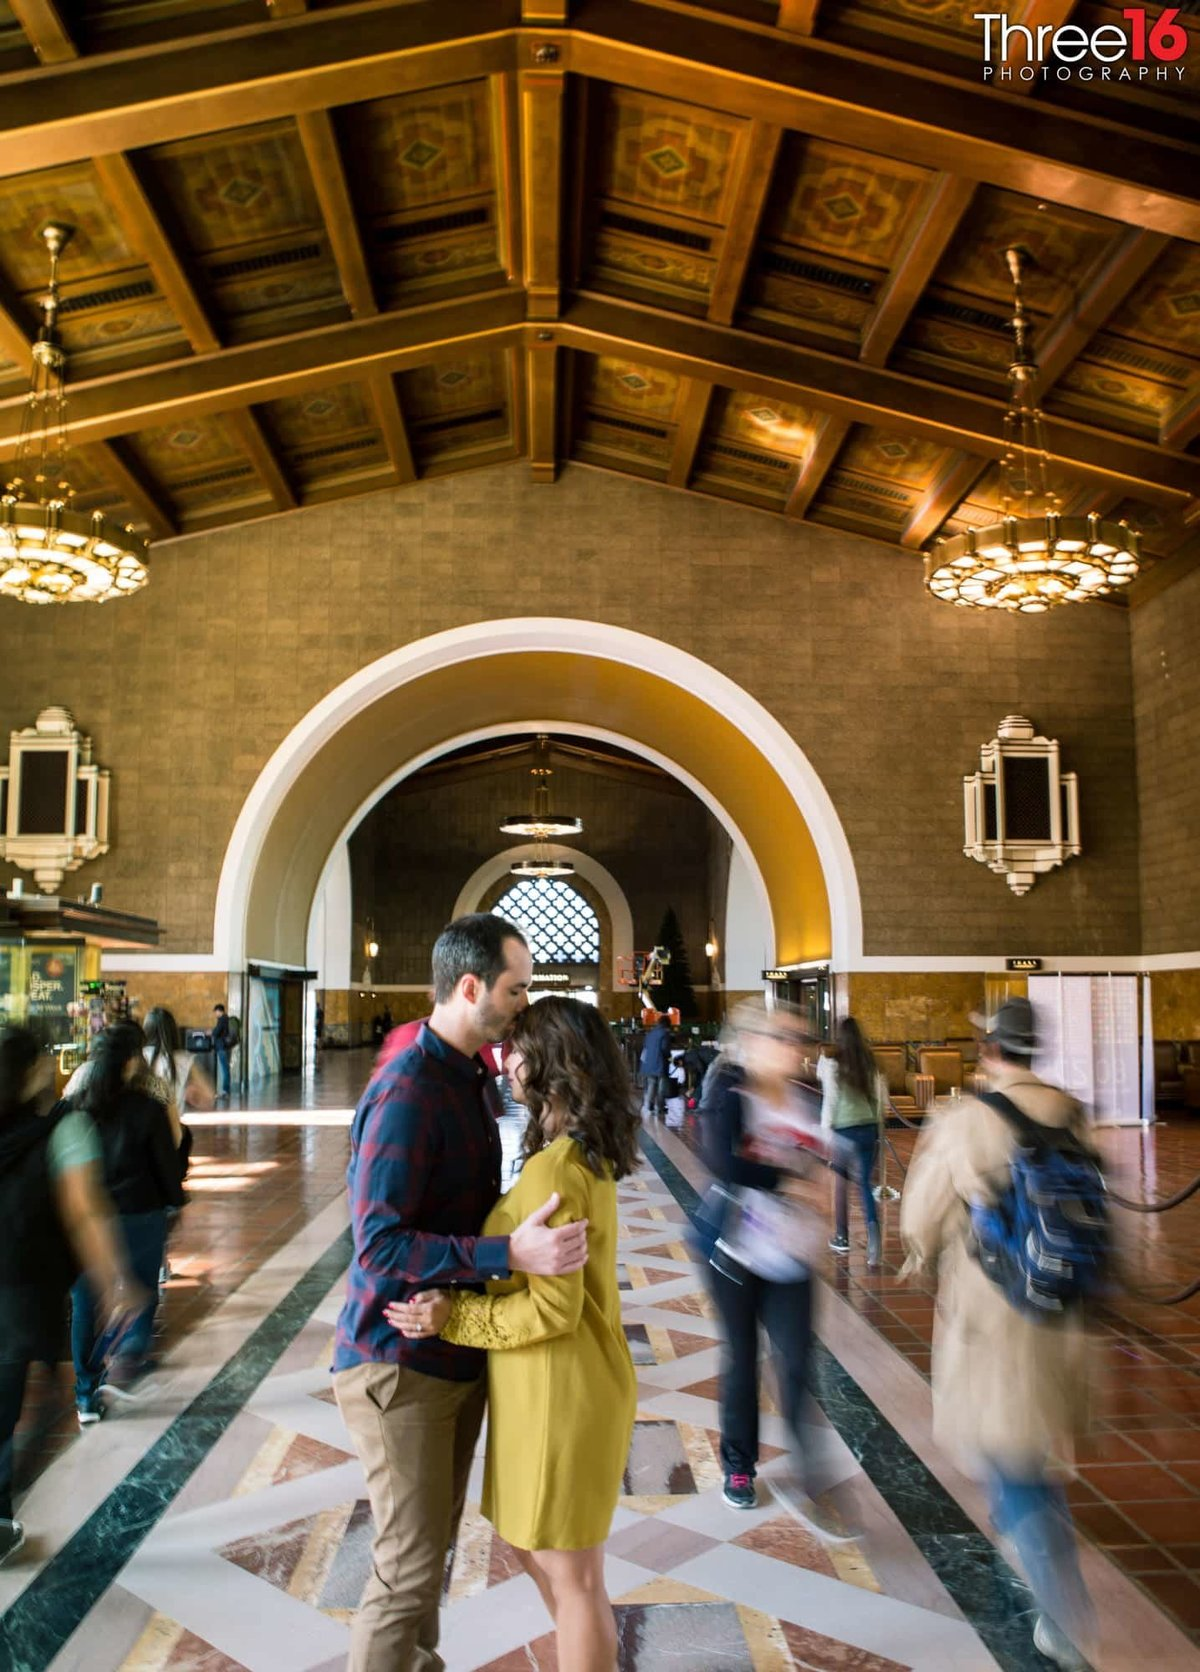 Los Angeles Union Station Engagement Photos LA County Wedding Professional Photographer Urban Unique